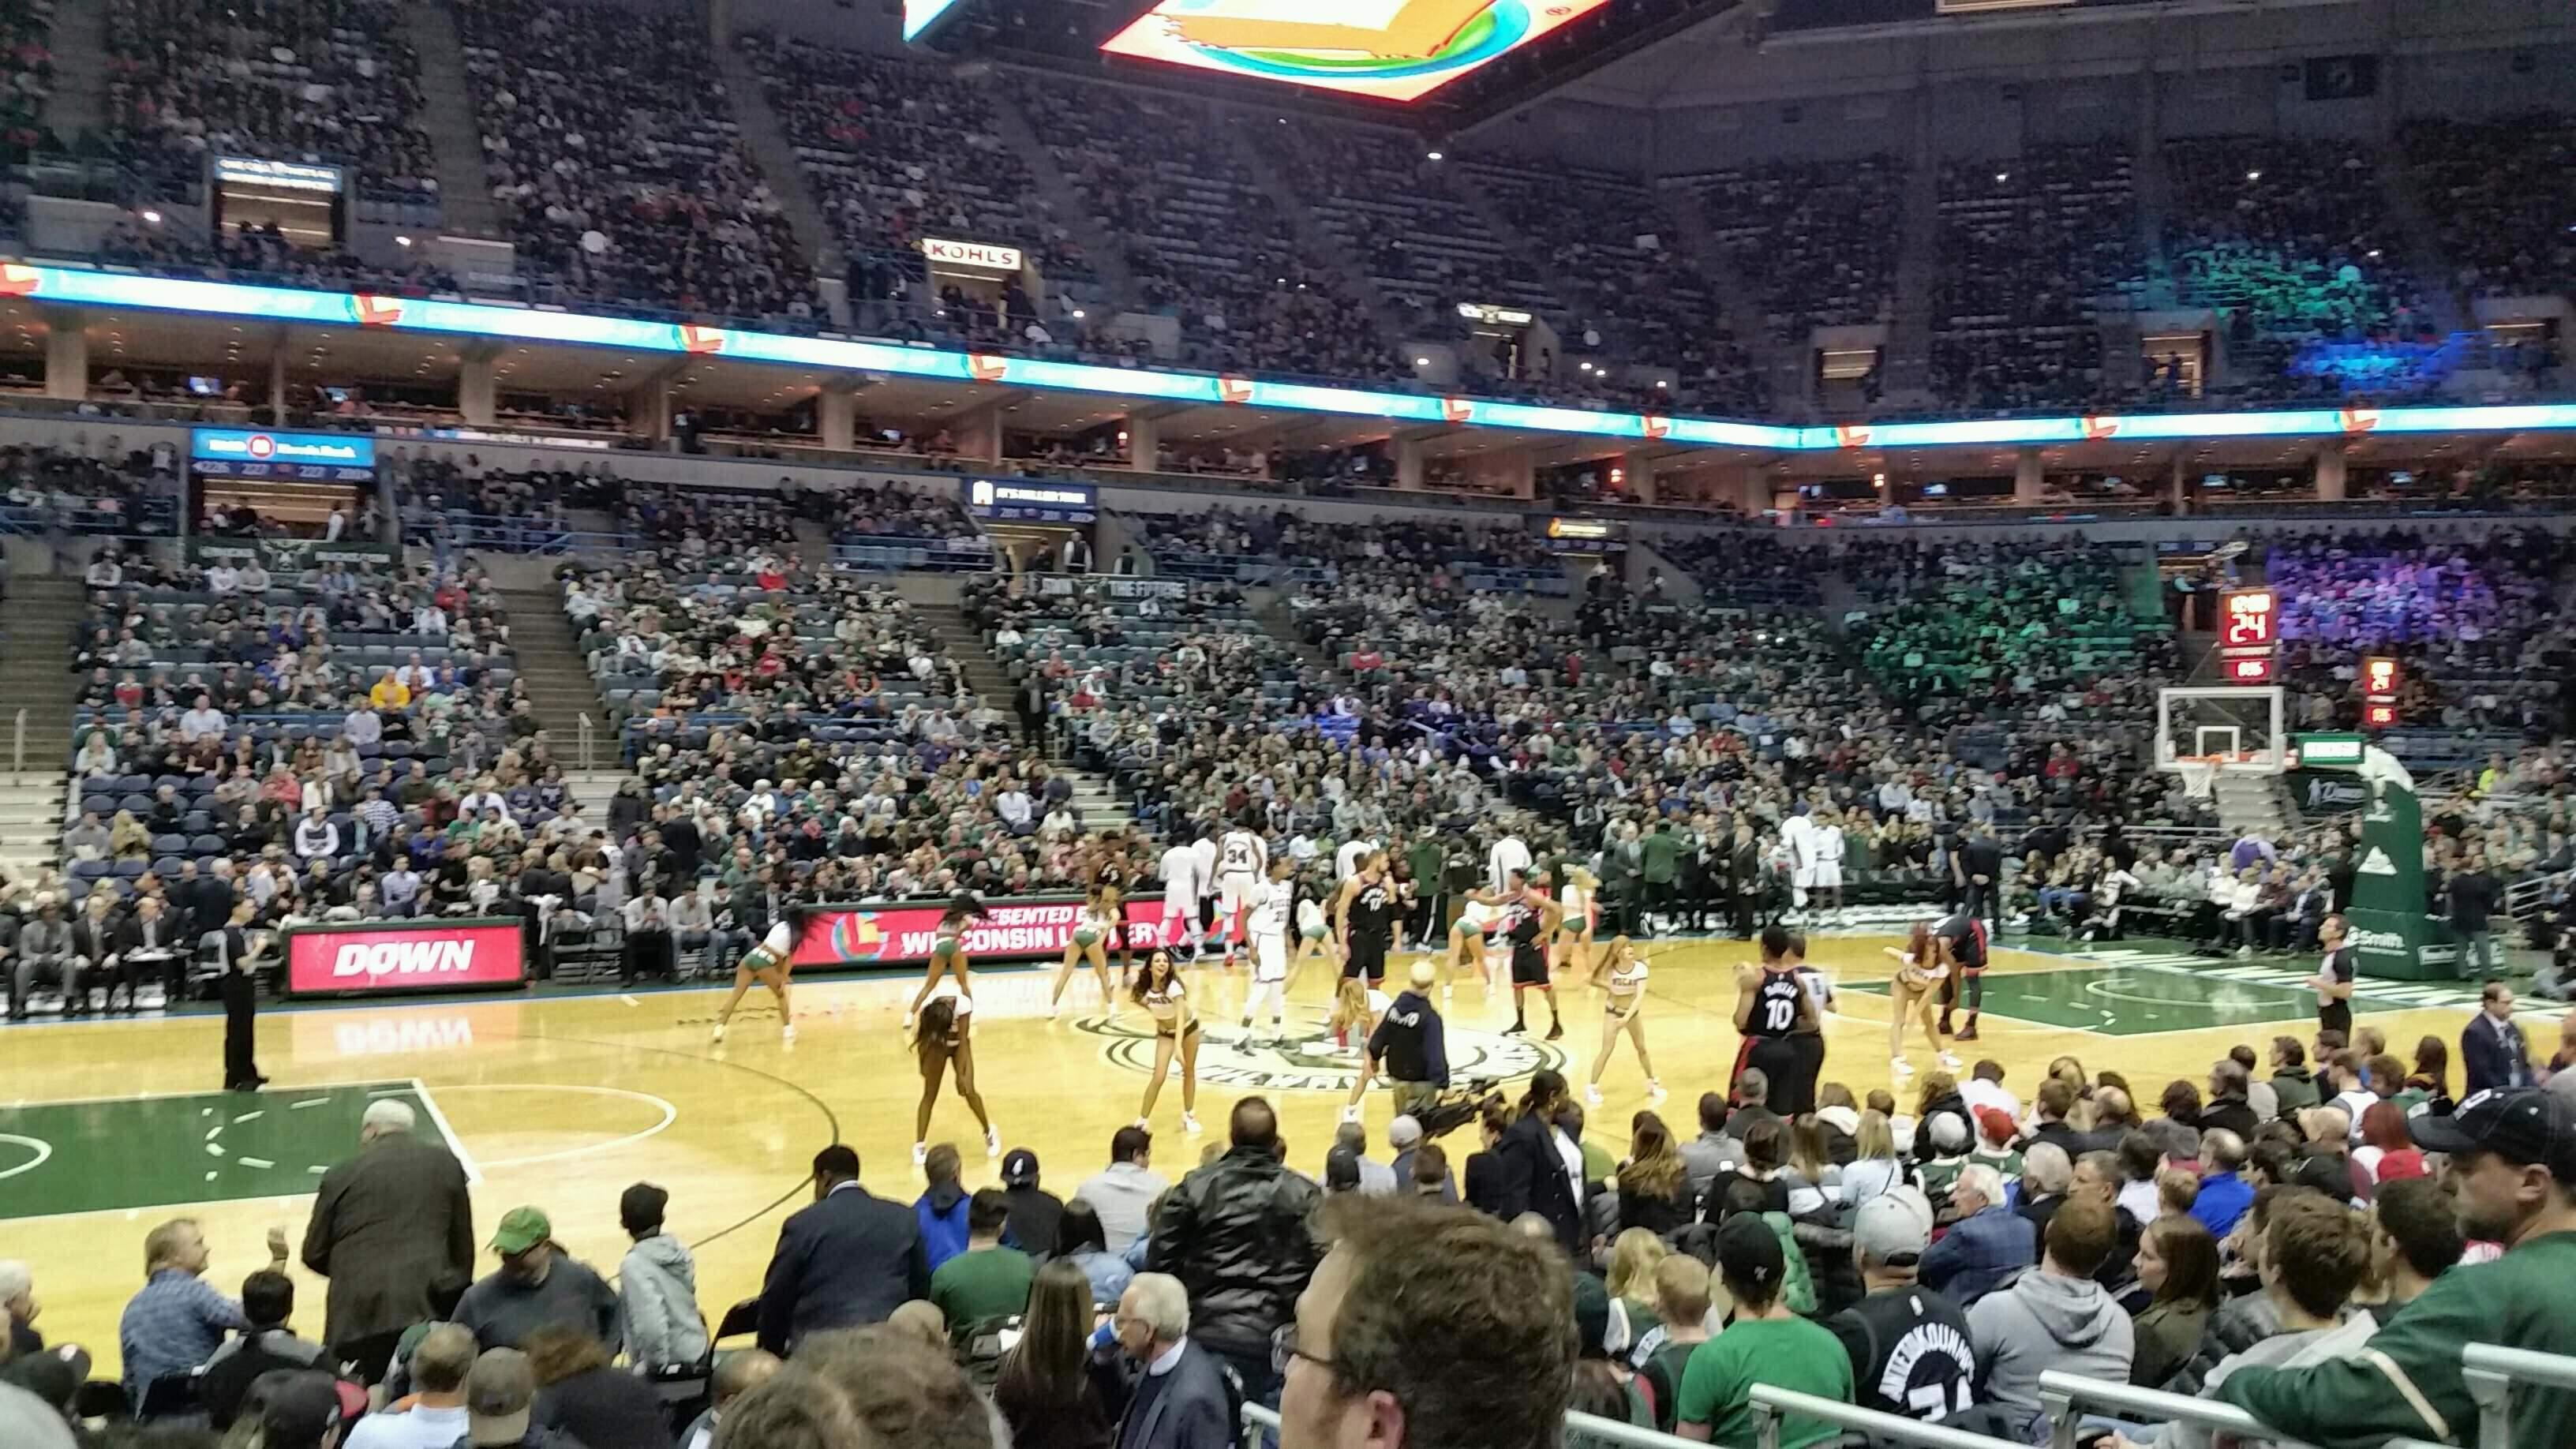 BMO Harris Bradley Center Section 215 Row H Seat 12